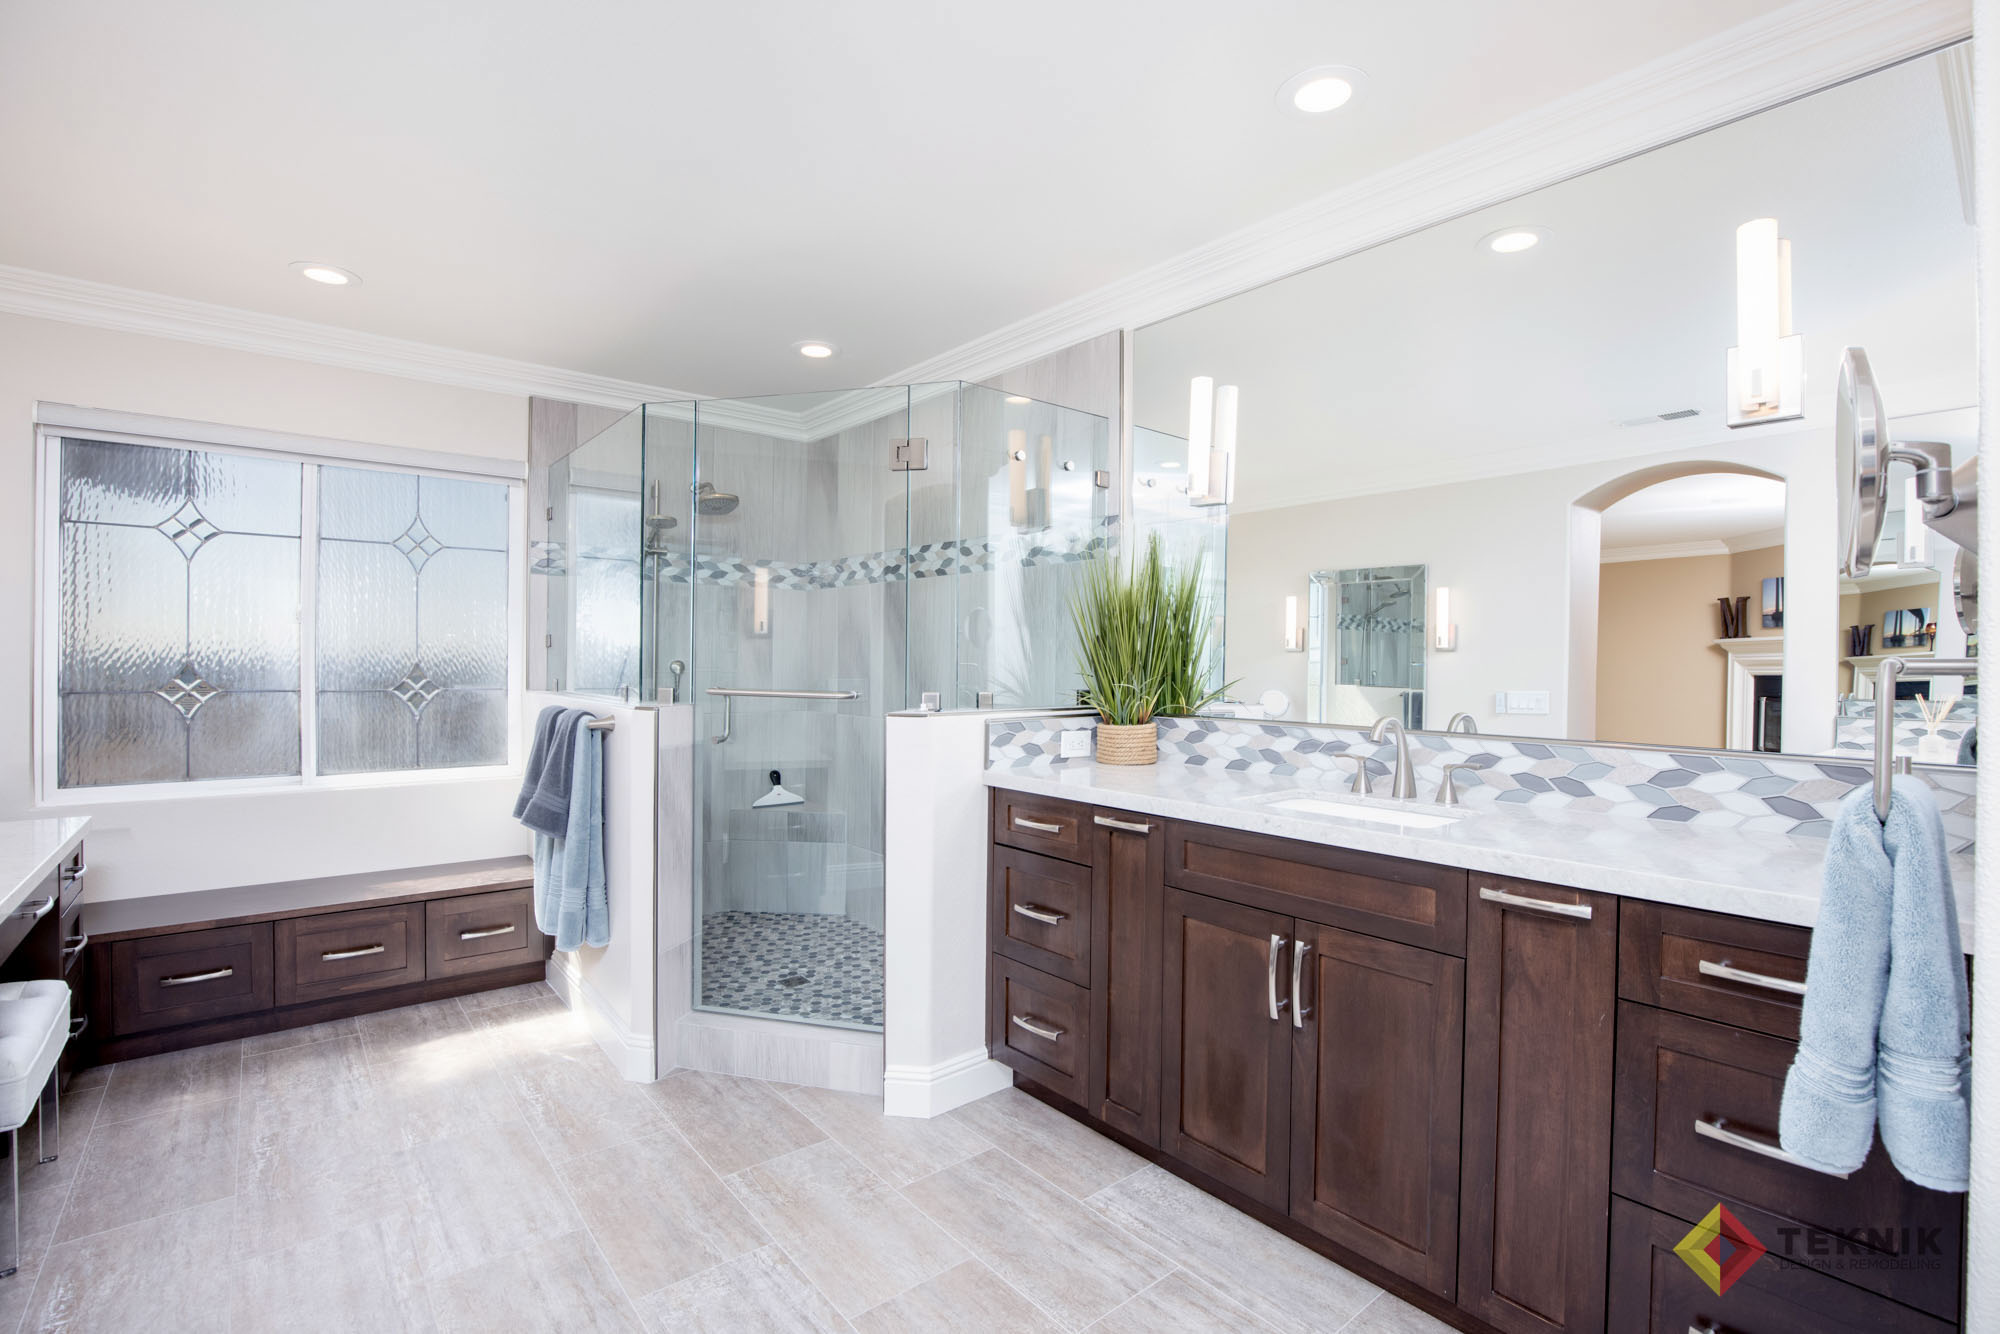 Remodeled bathroom with corner glass shower, dual sinks, dark cabinets and white countertops